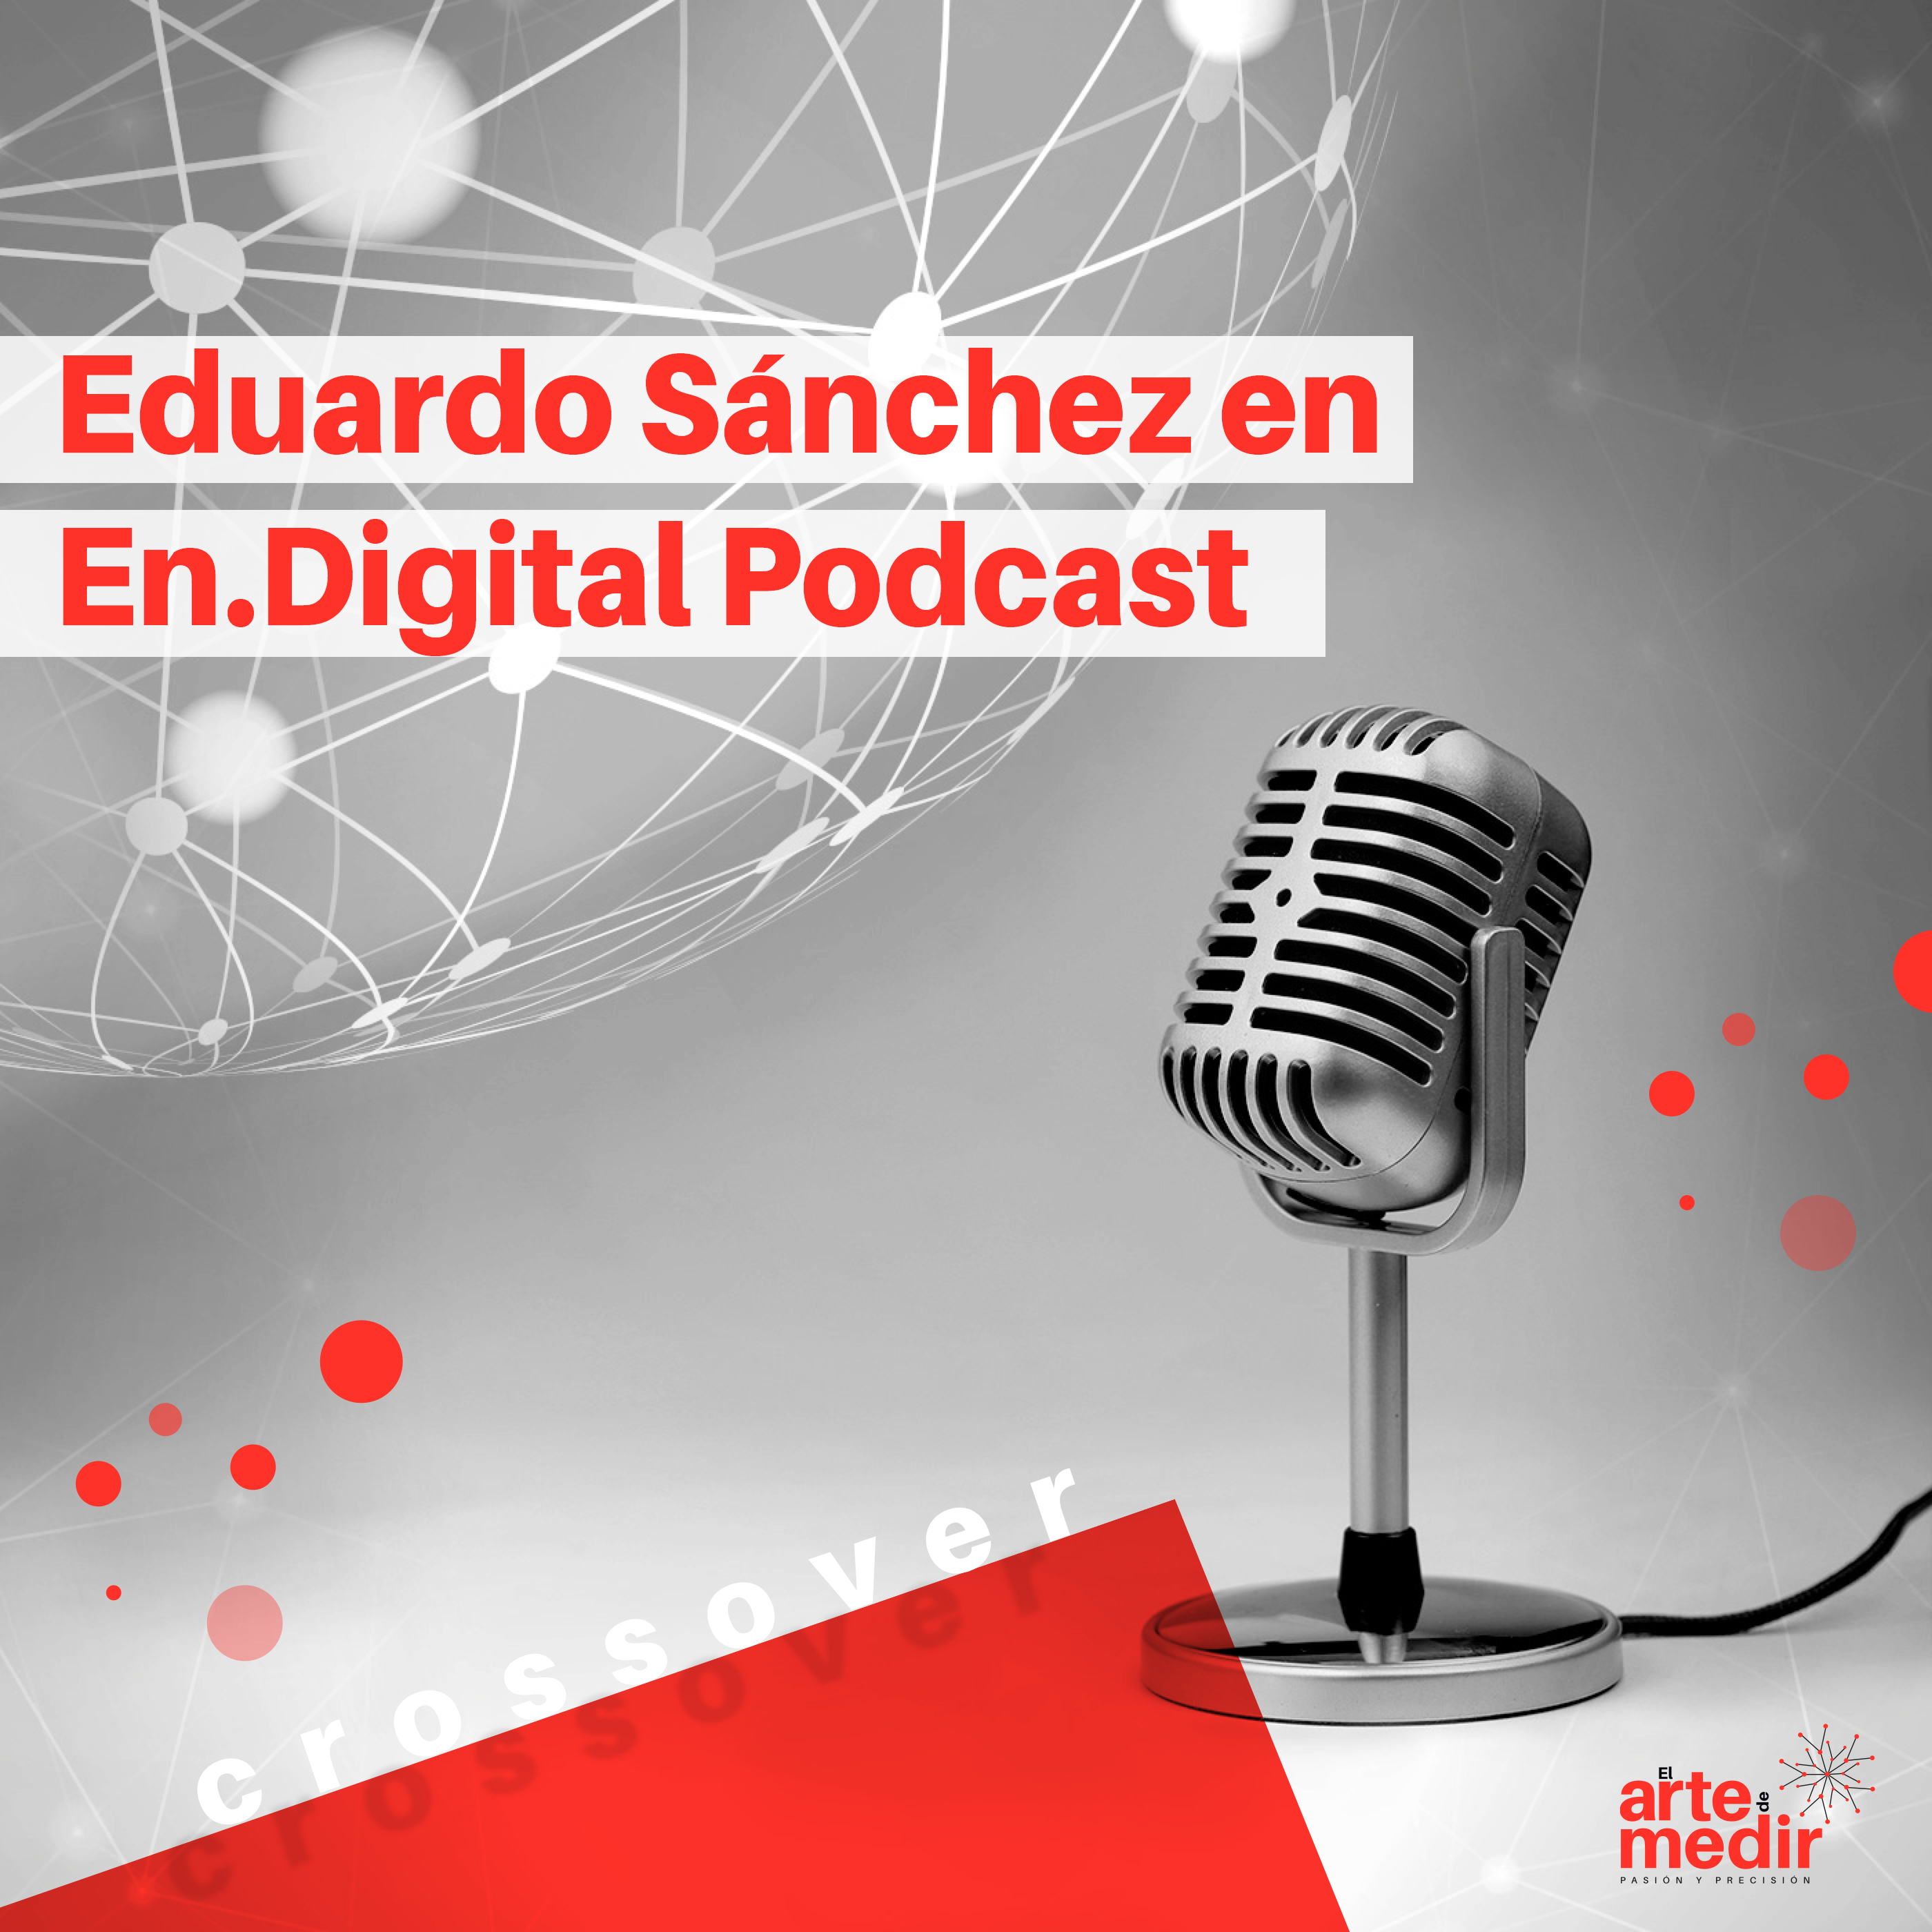 Podcast en.Digital